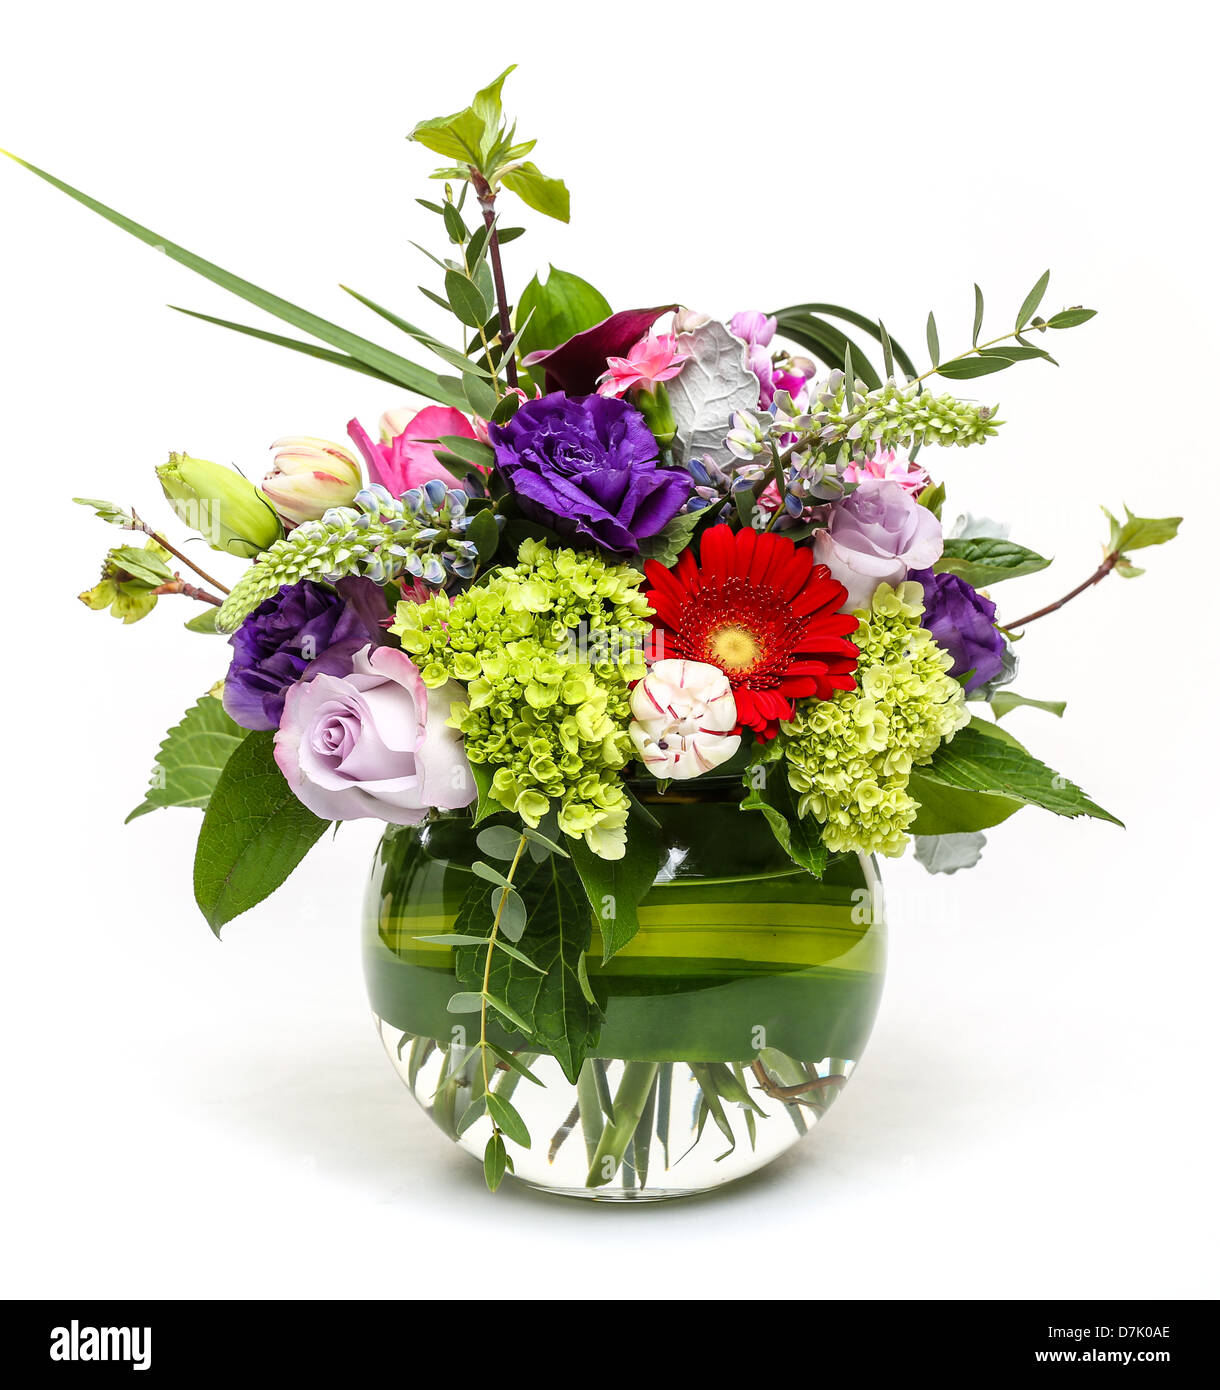 Cool beautiful flower arrangement pictures contemporary images for the beautiful flower arrangement in clear glass vase stock photo izmirmasajfo Images